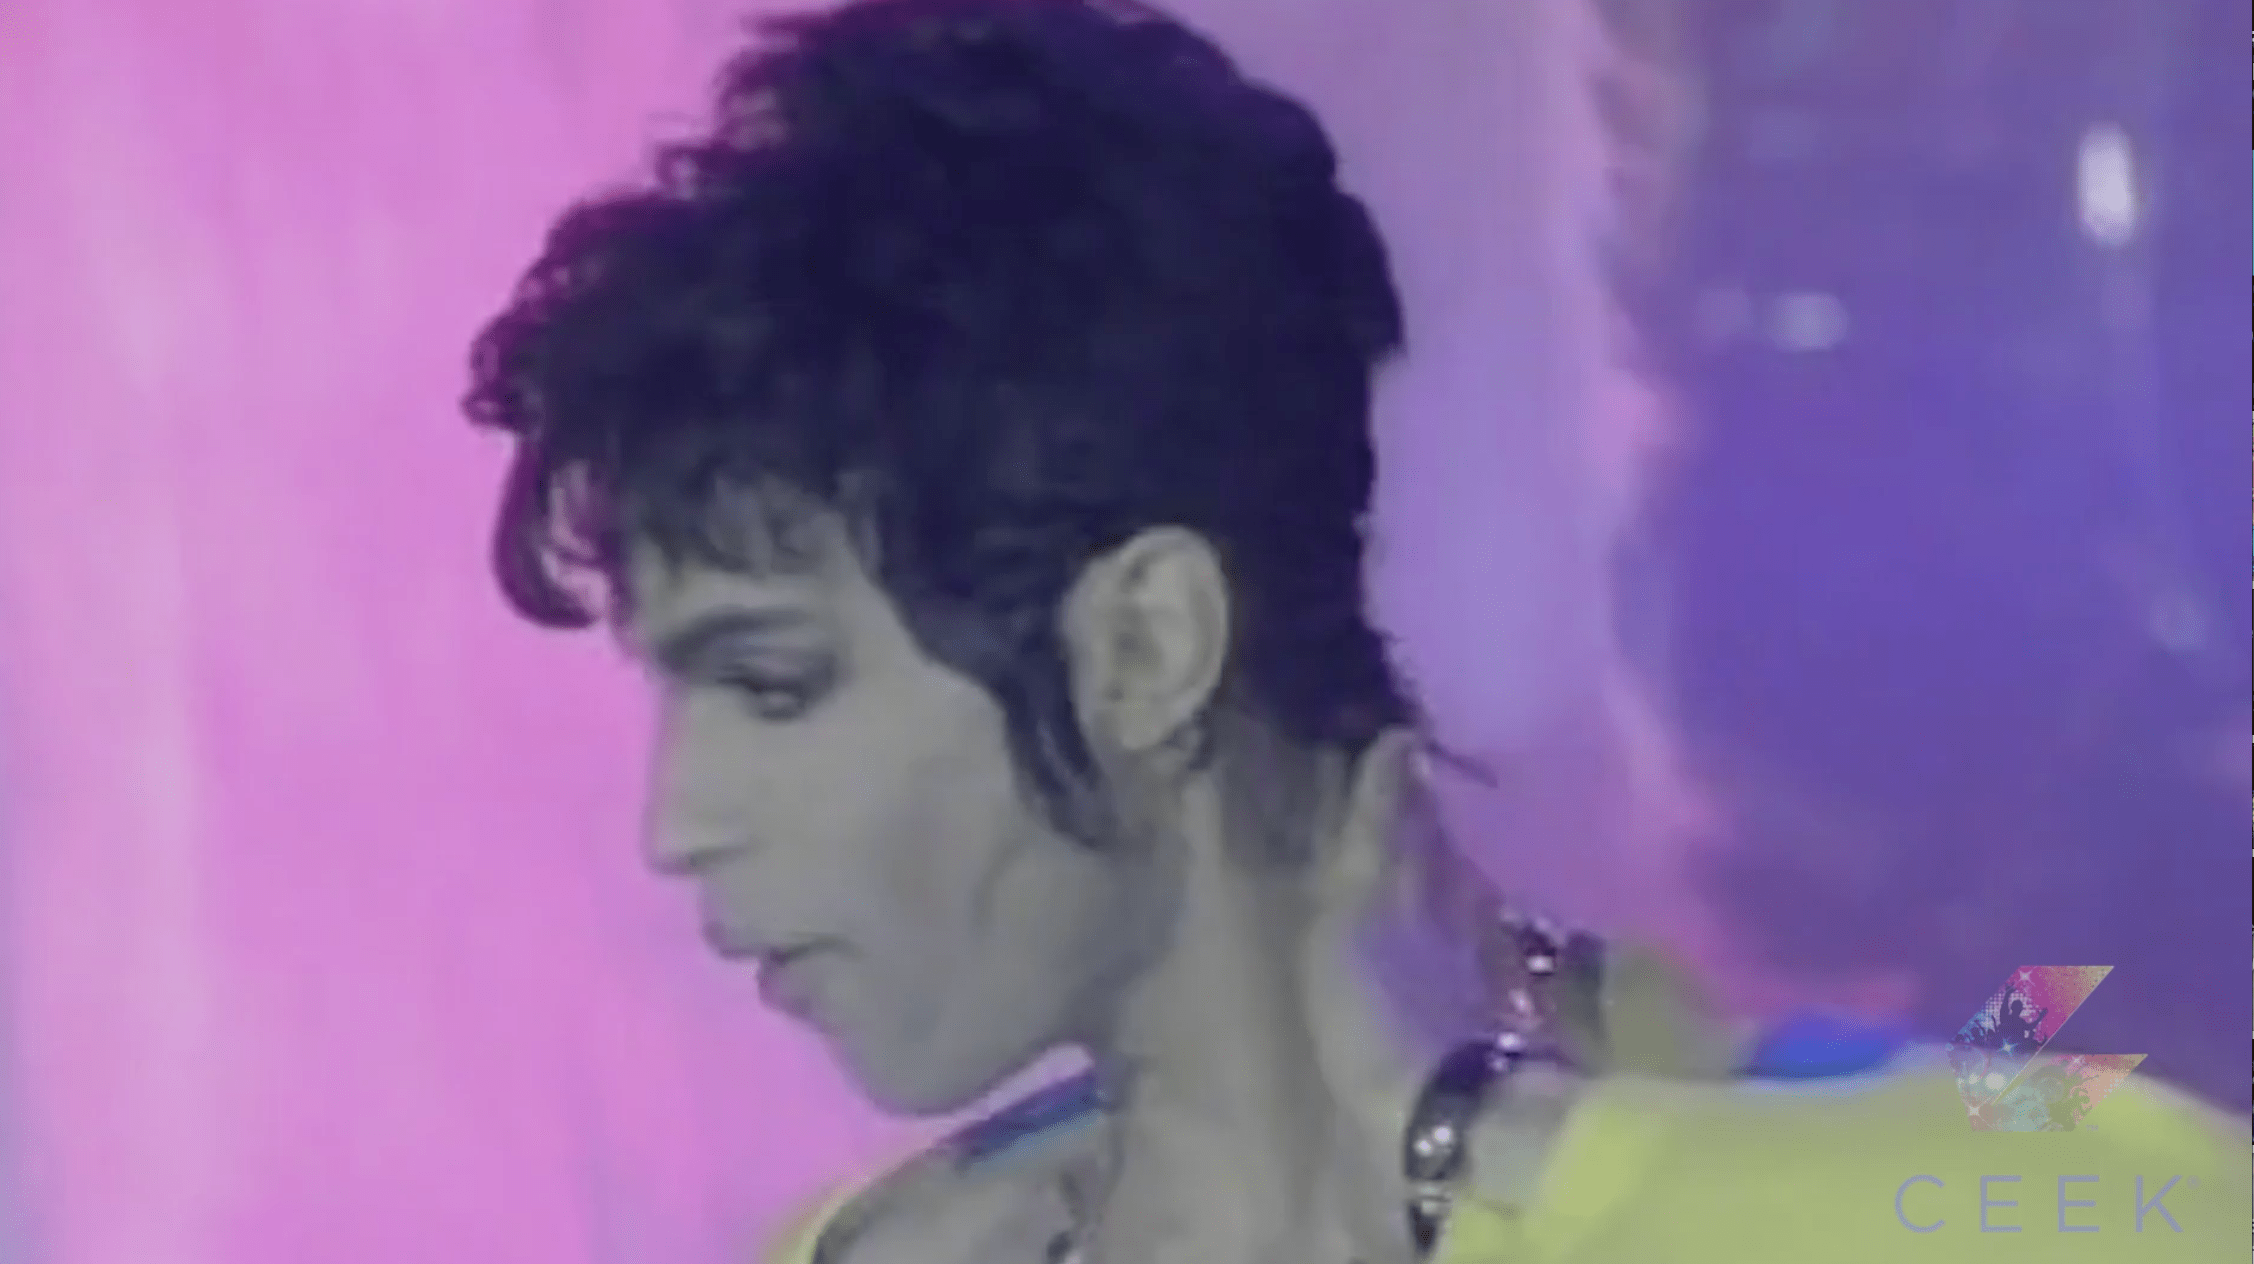 Prince Performs The Most Beautiful Girl In The World at the World Music Awards